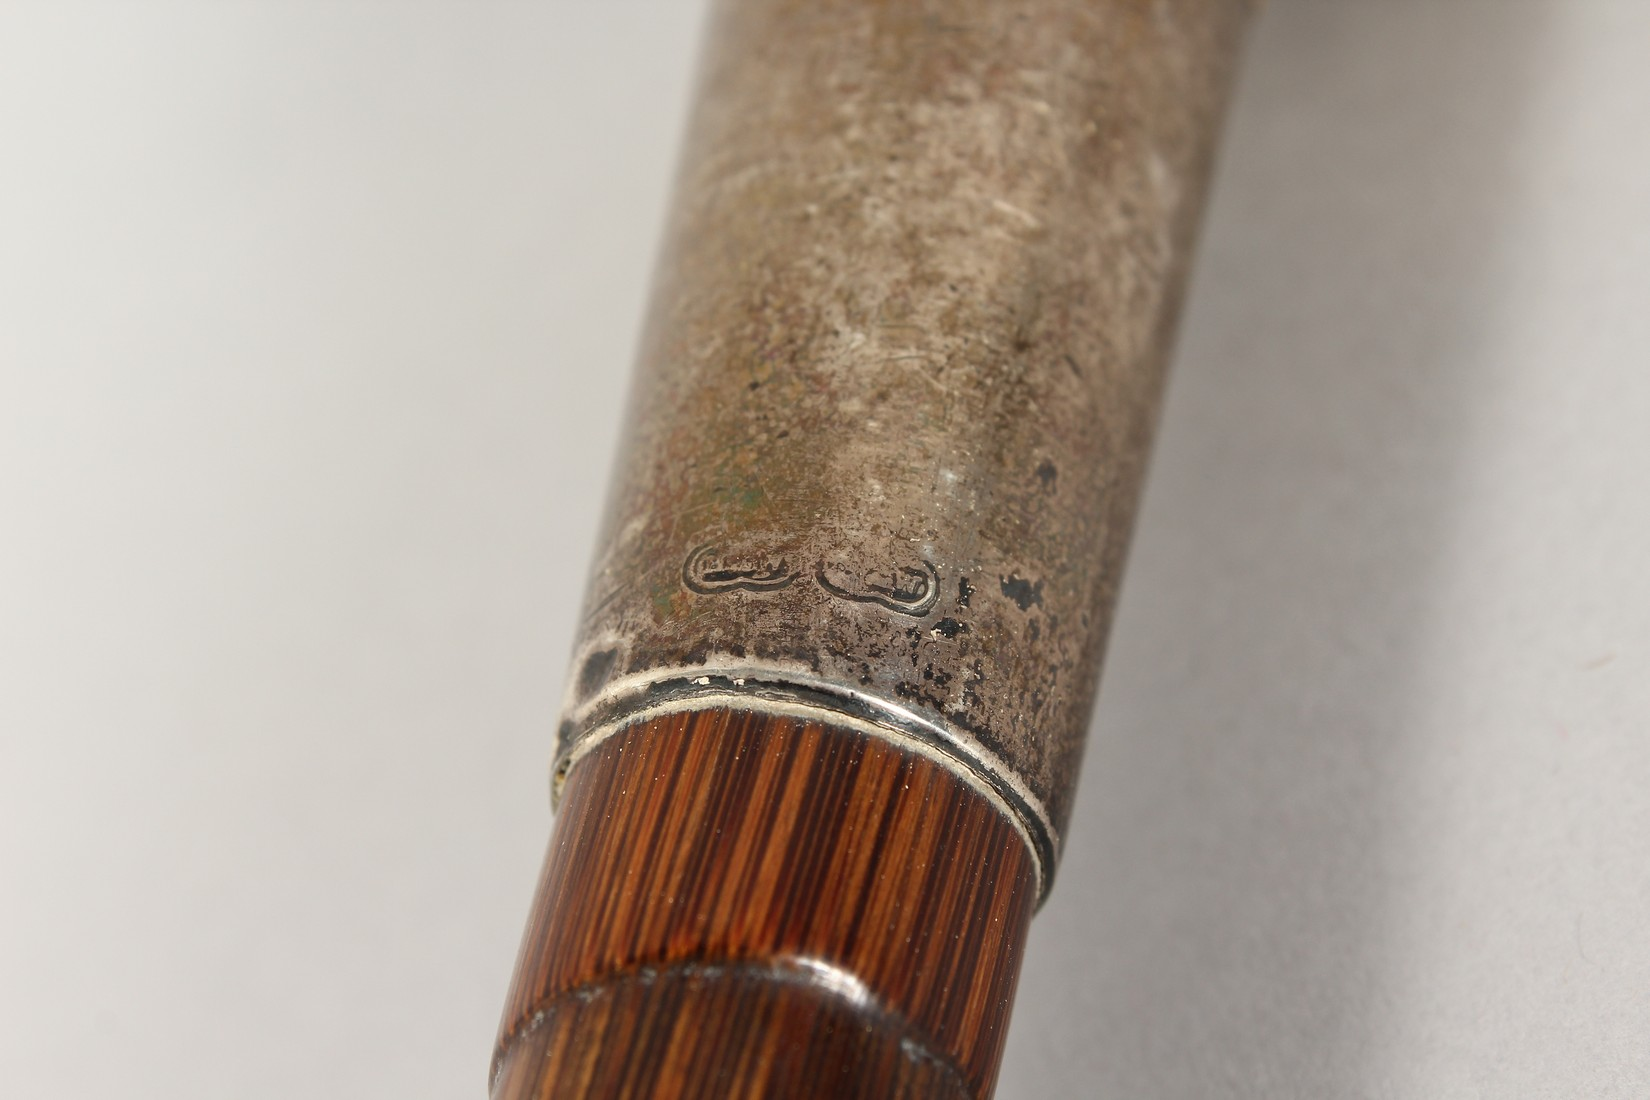 A GOOD VICTORIAN CARVED IVORY CLENCHED FIST HANDLE WALKING STICK with silver band. - Image 6 of 8